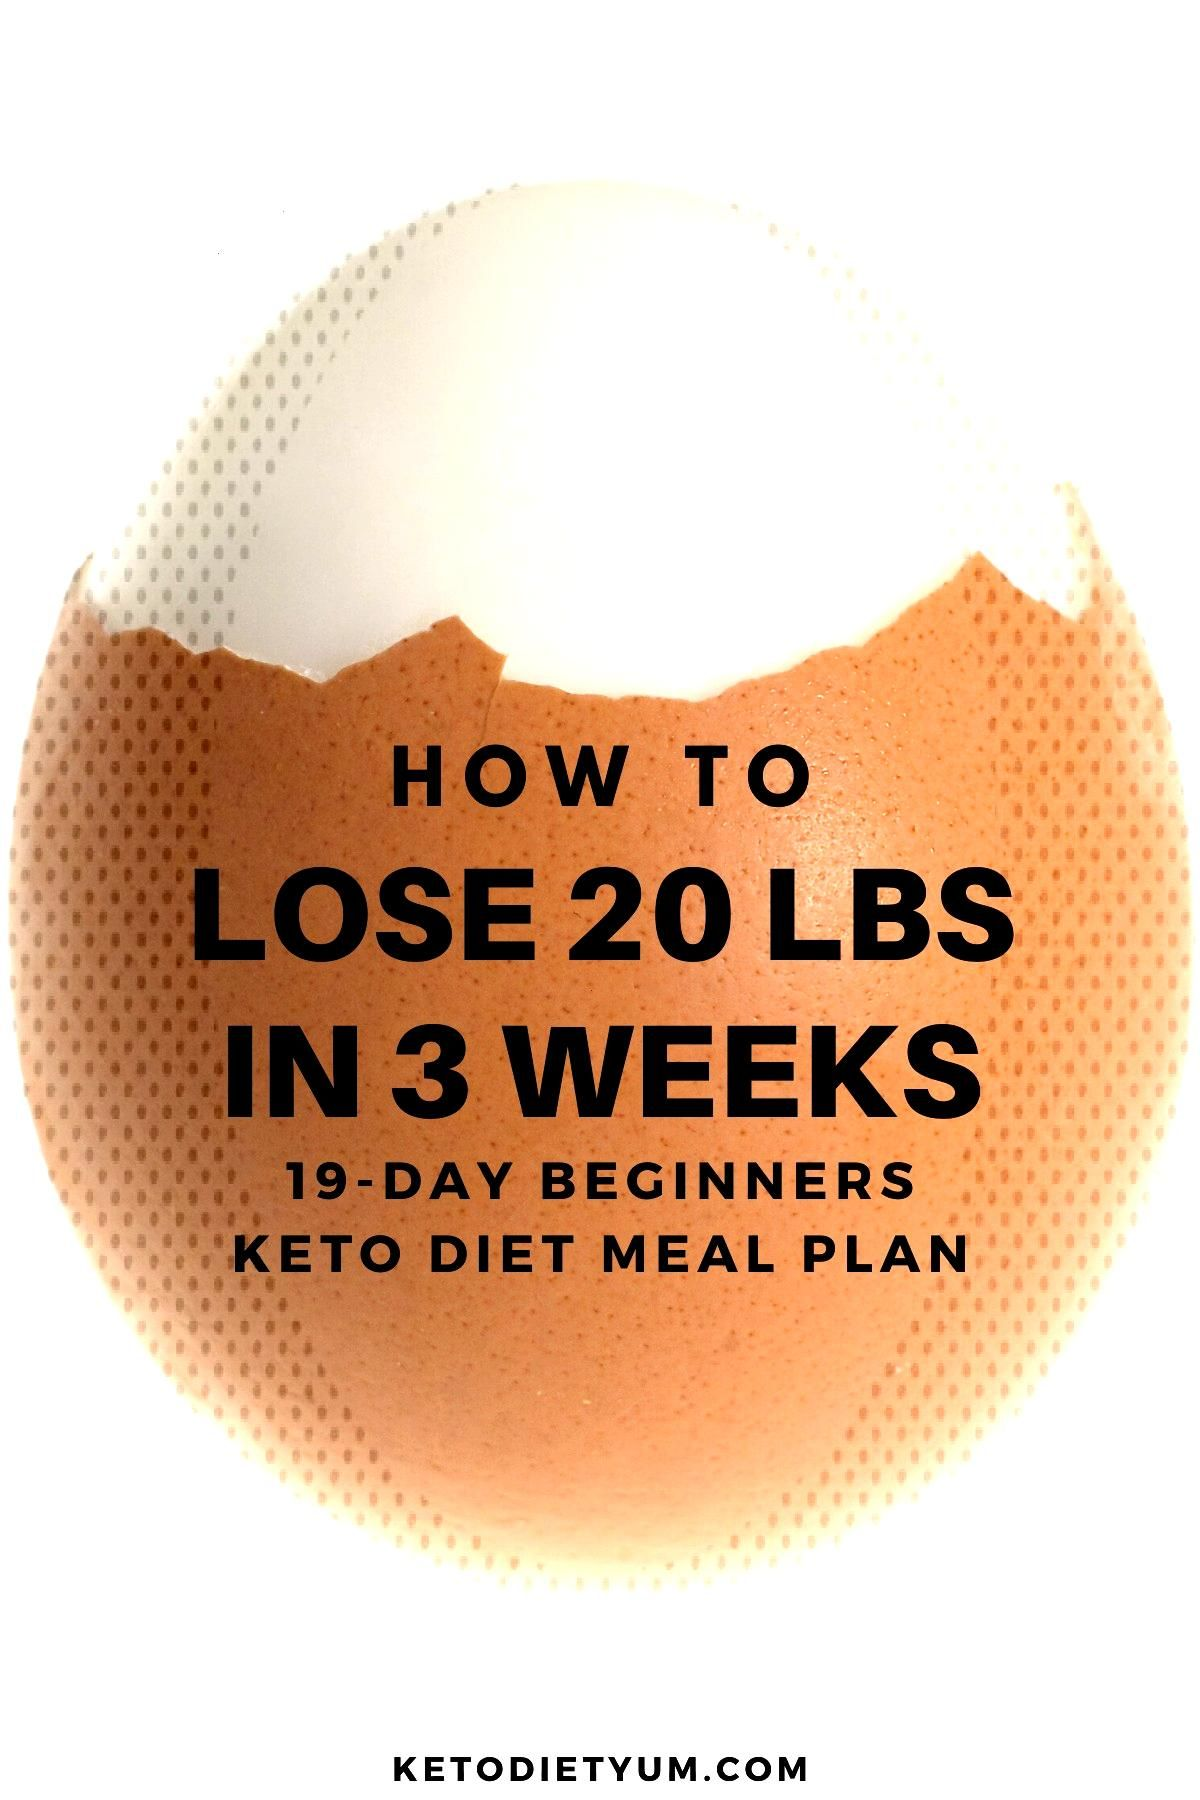 Lose 20 pounds in 3 weeks with the 19-day keto diet menu and meal plan. Our beginners keto diet pla